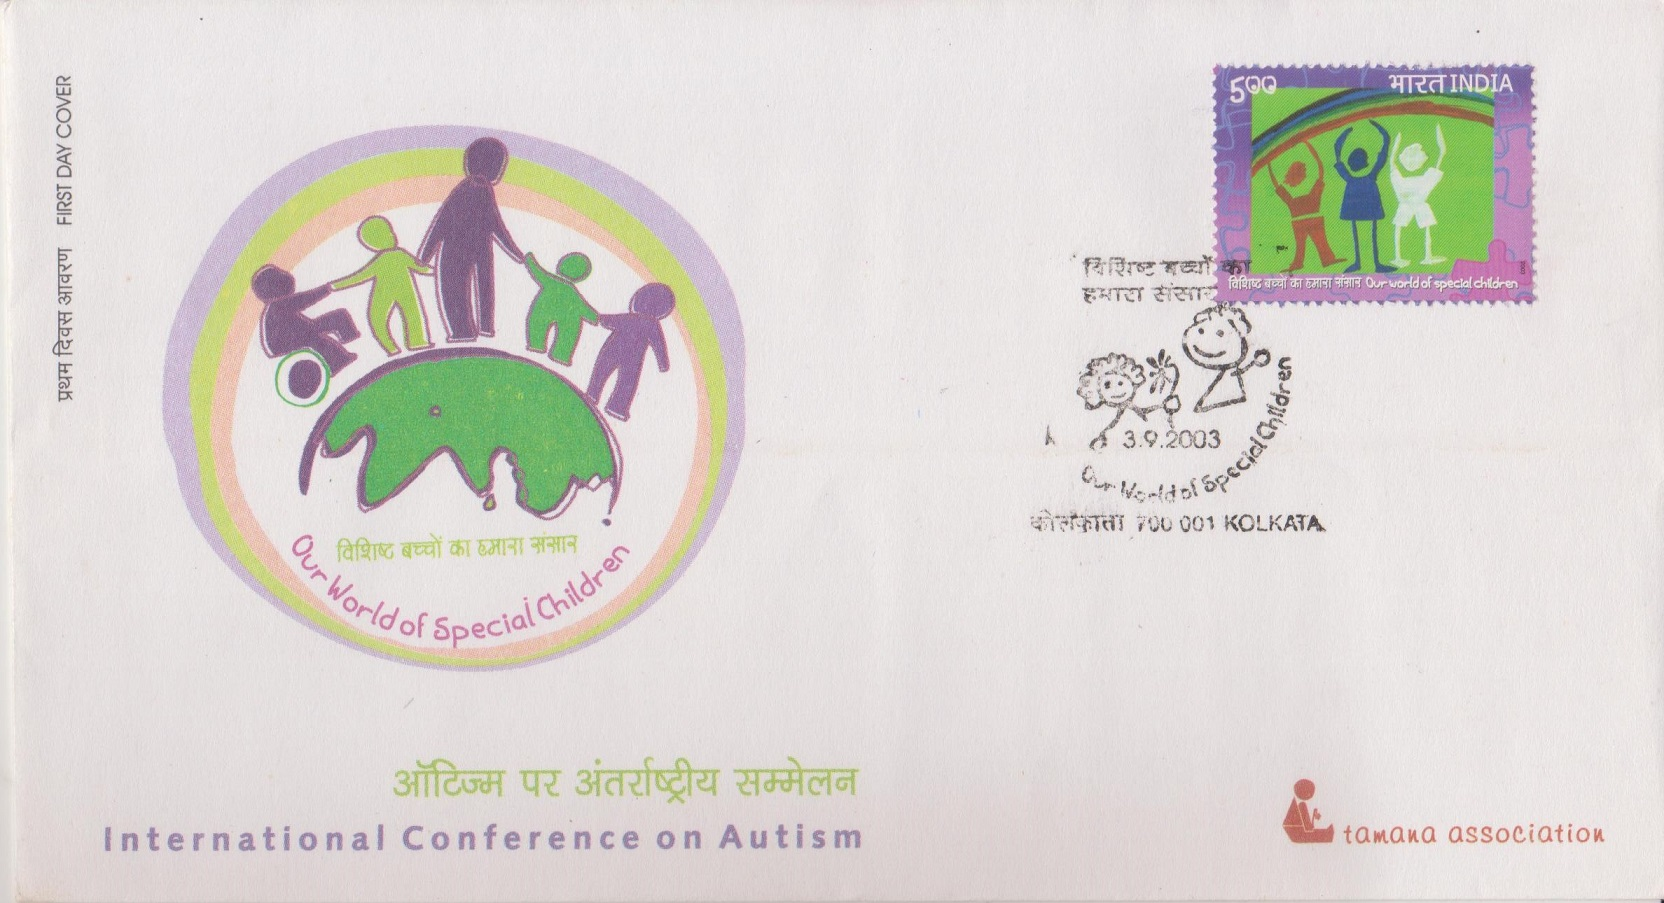 Our World of Special Children : Tamana Association